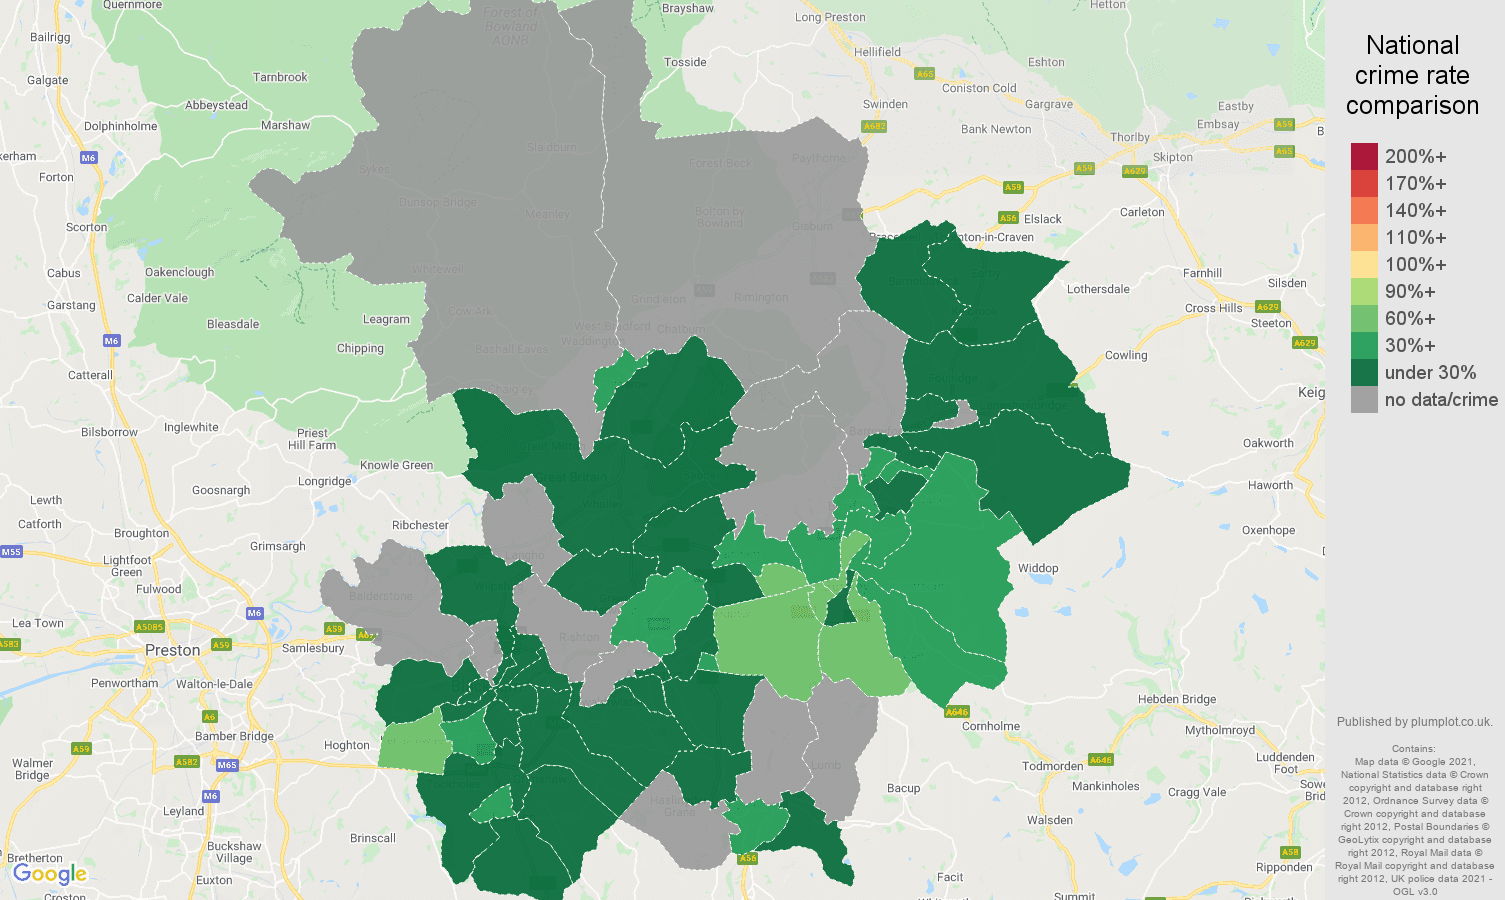 Blackburn bicycle theft crime rate comparison map